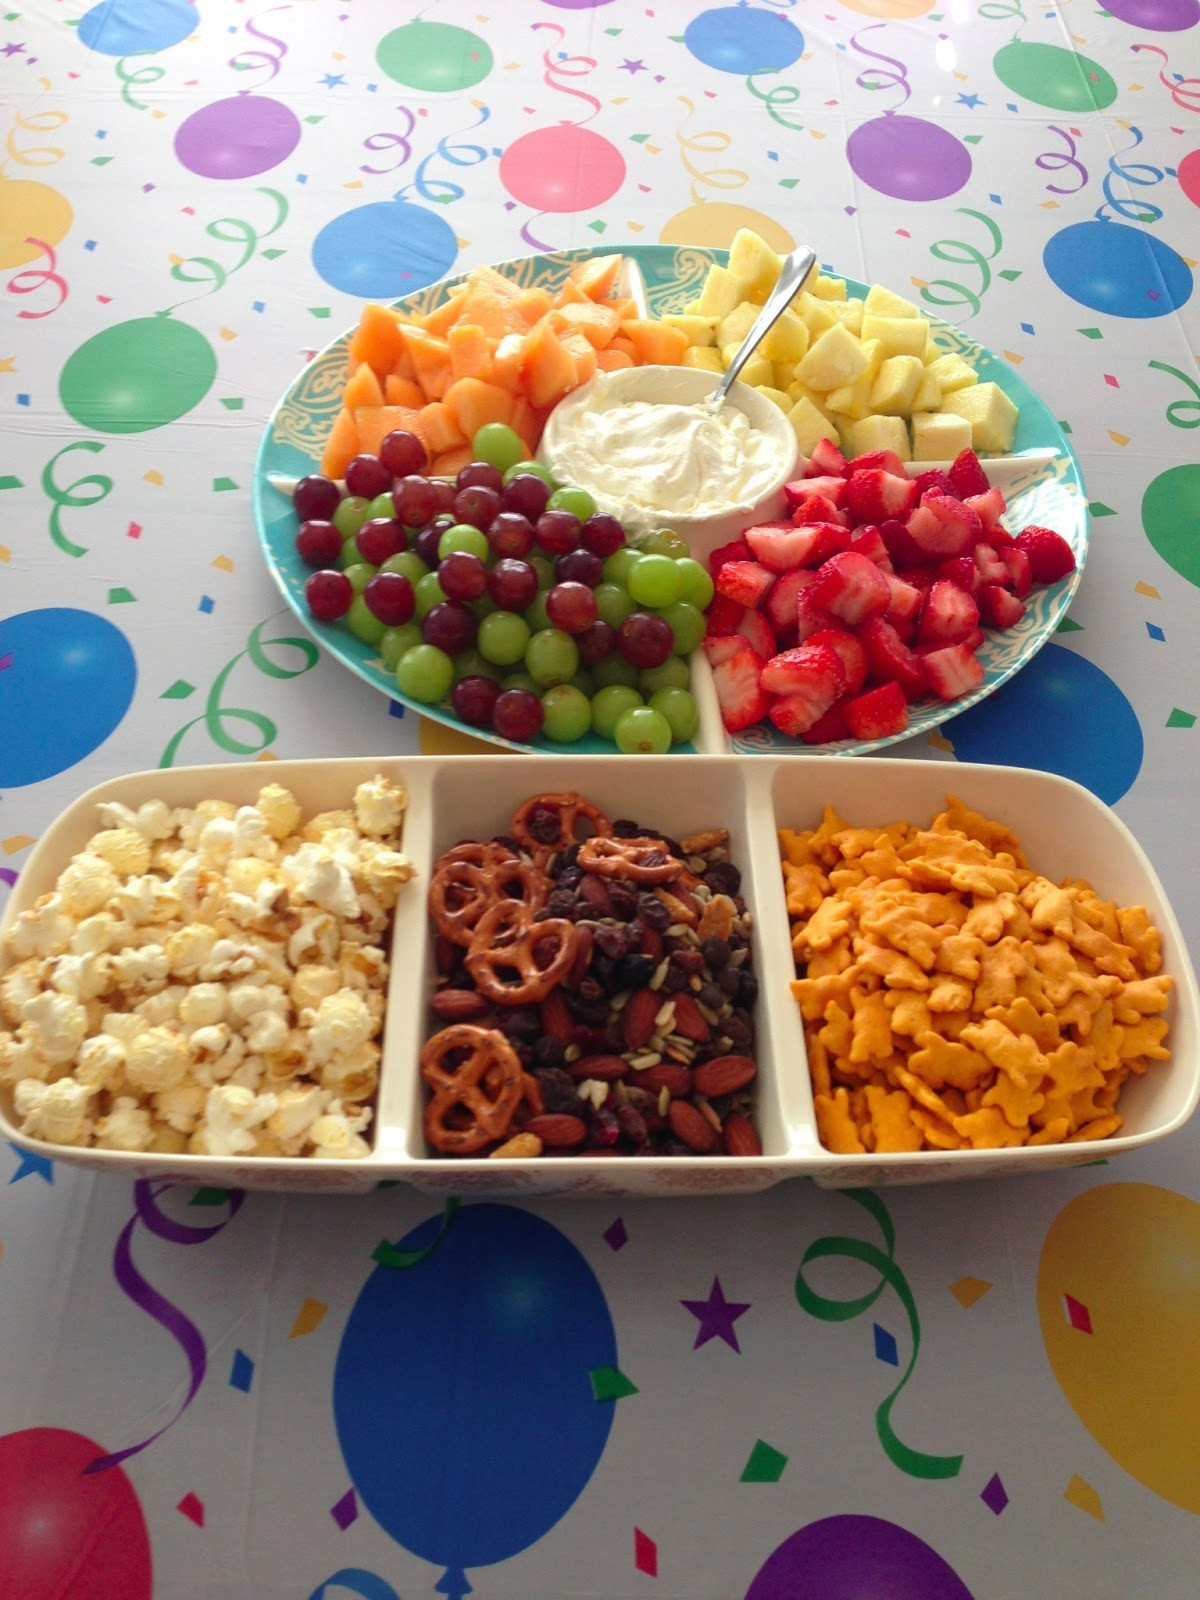 Children Birthday Party Food Ideas  Fit n Busy Mama Healthy Kids Birthday Party